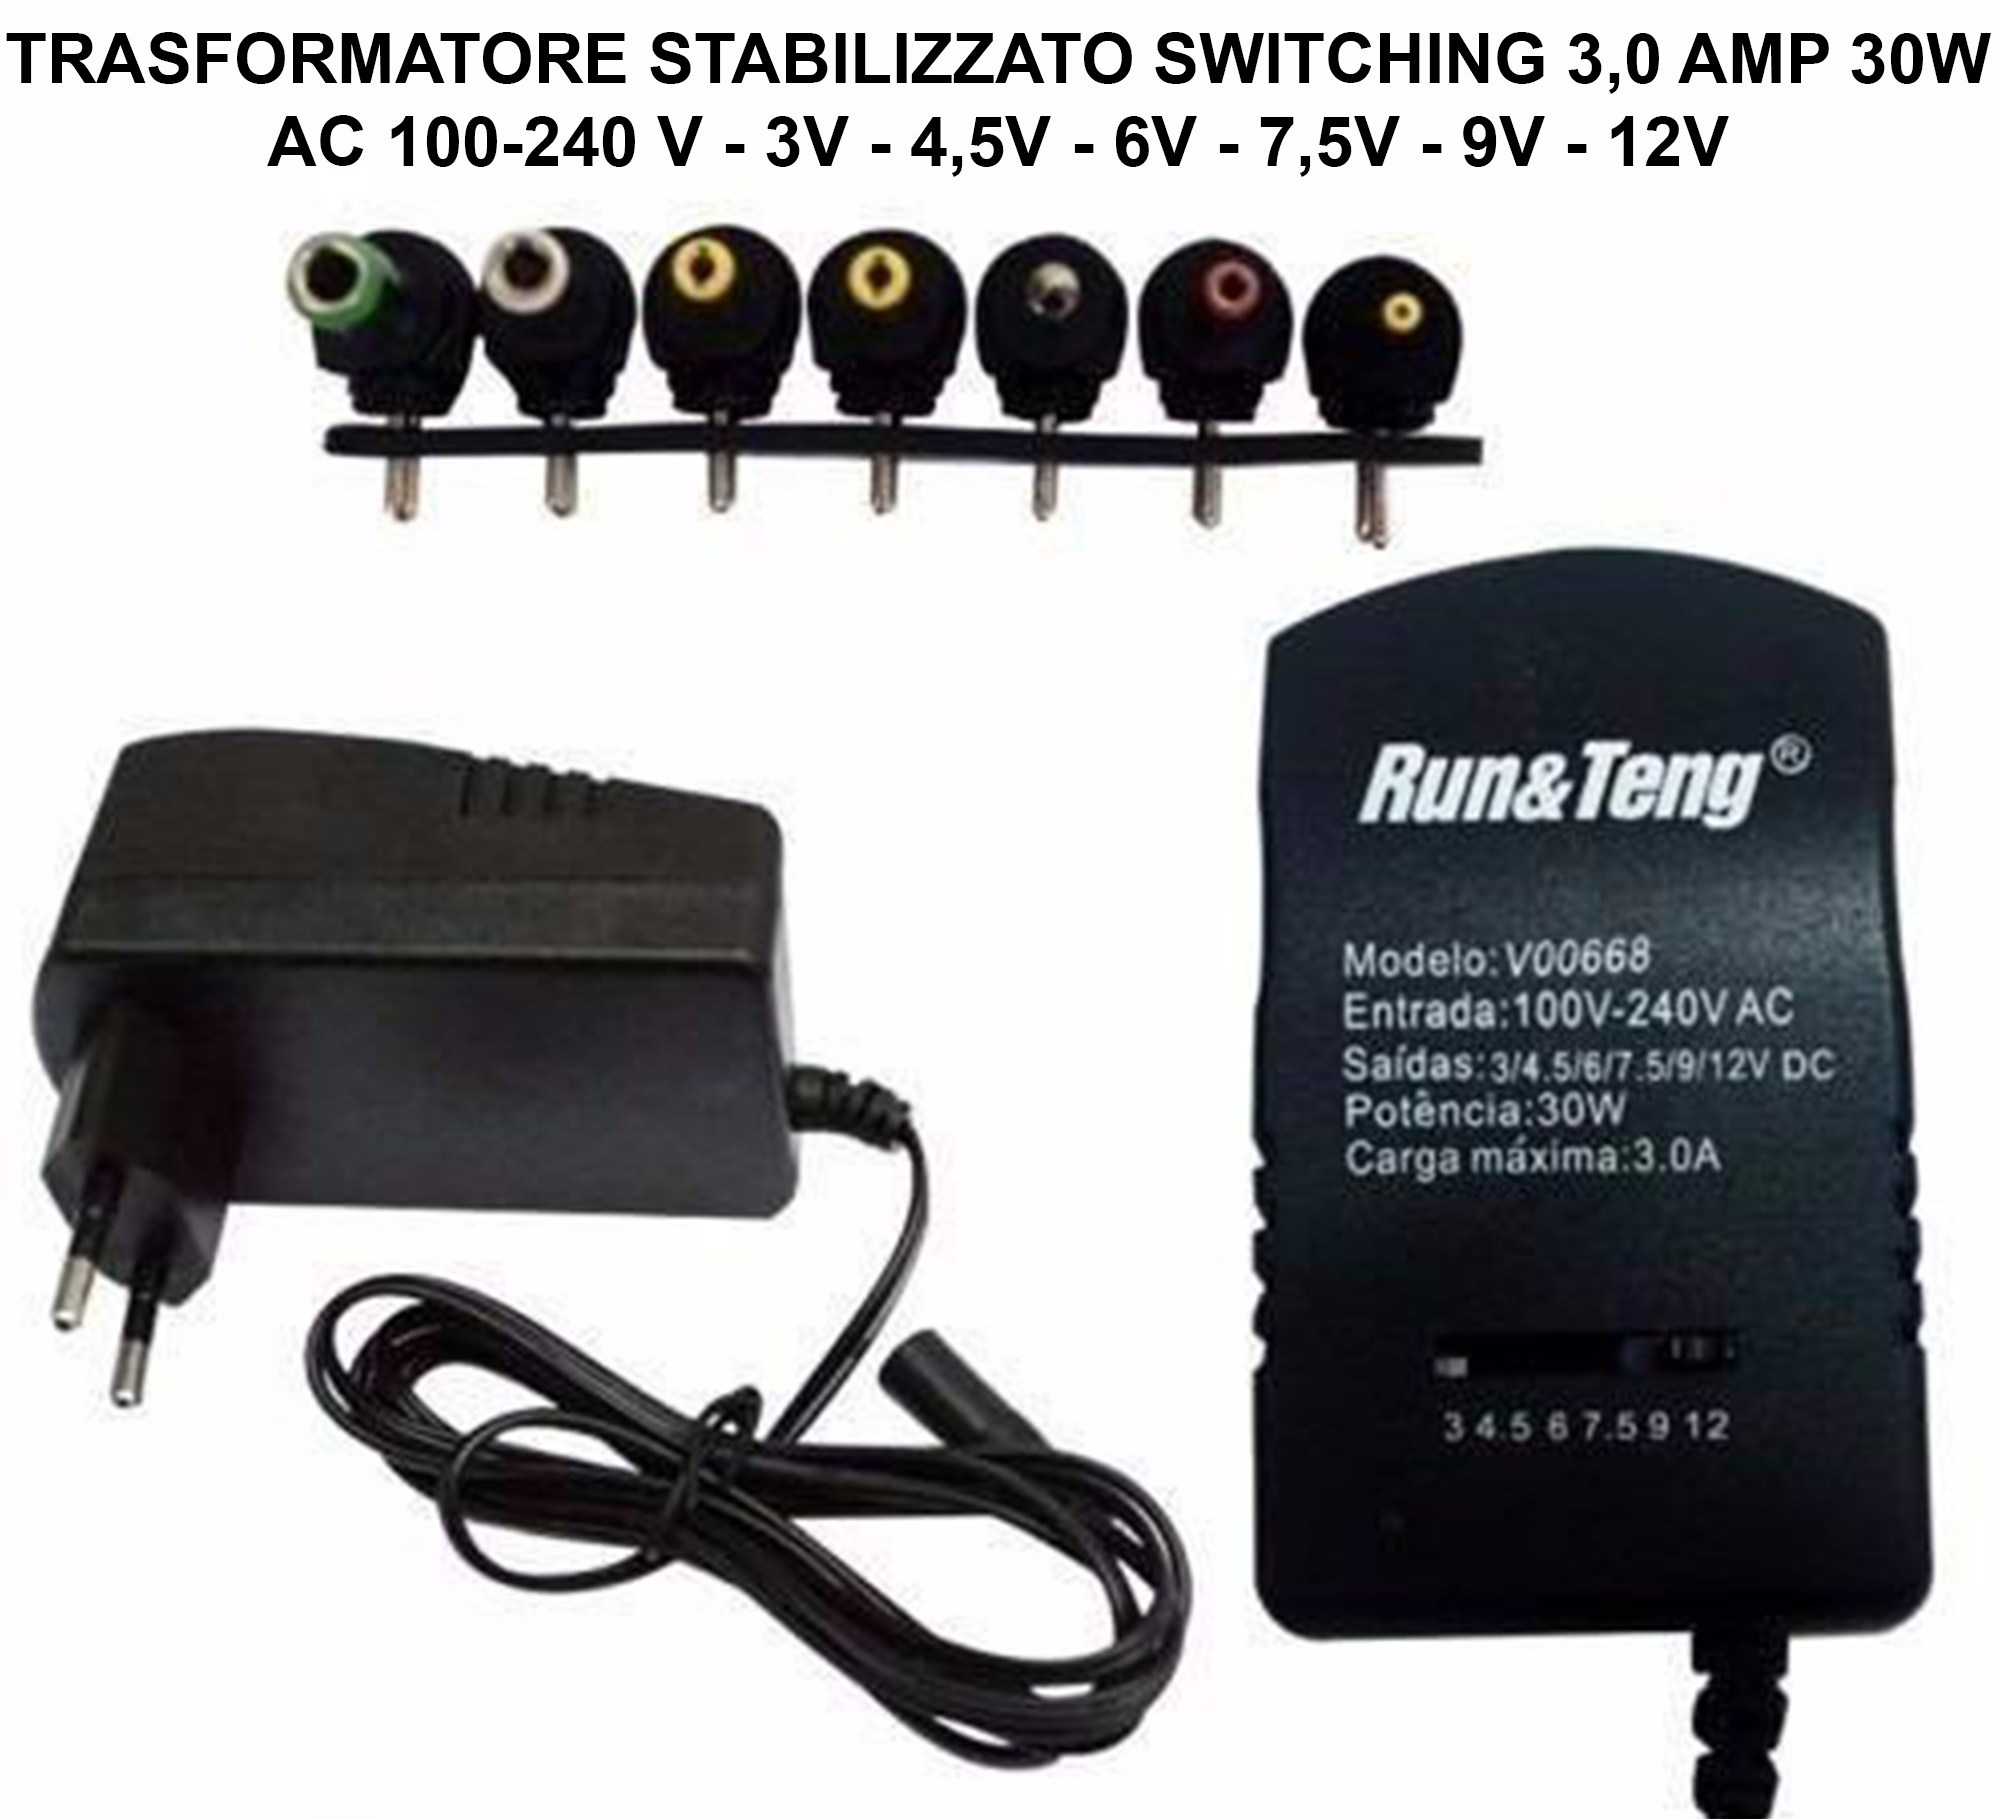 ALIMENTATORE SWITCHING 30W VARIE CONNESSIONI